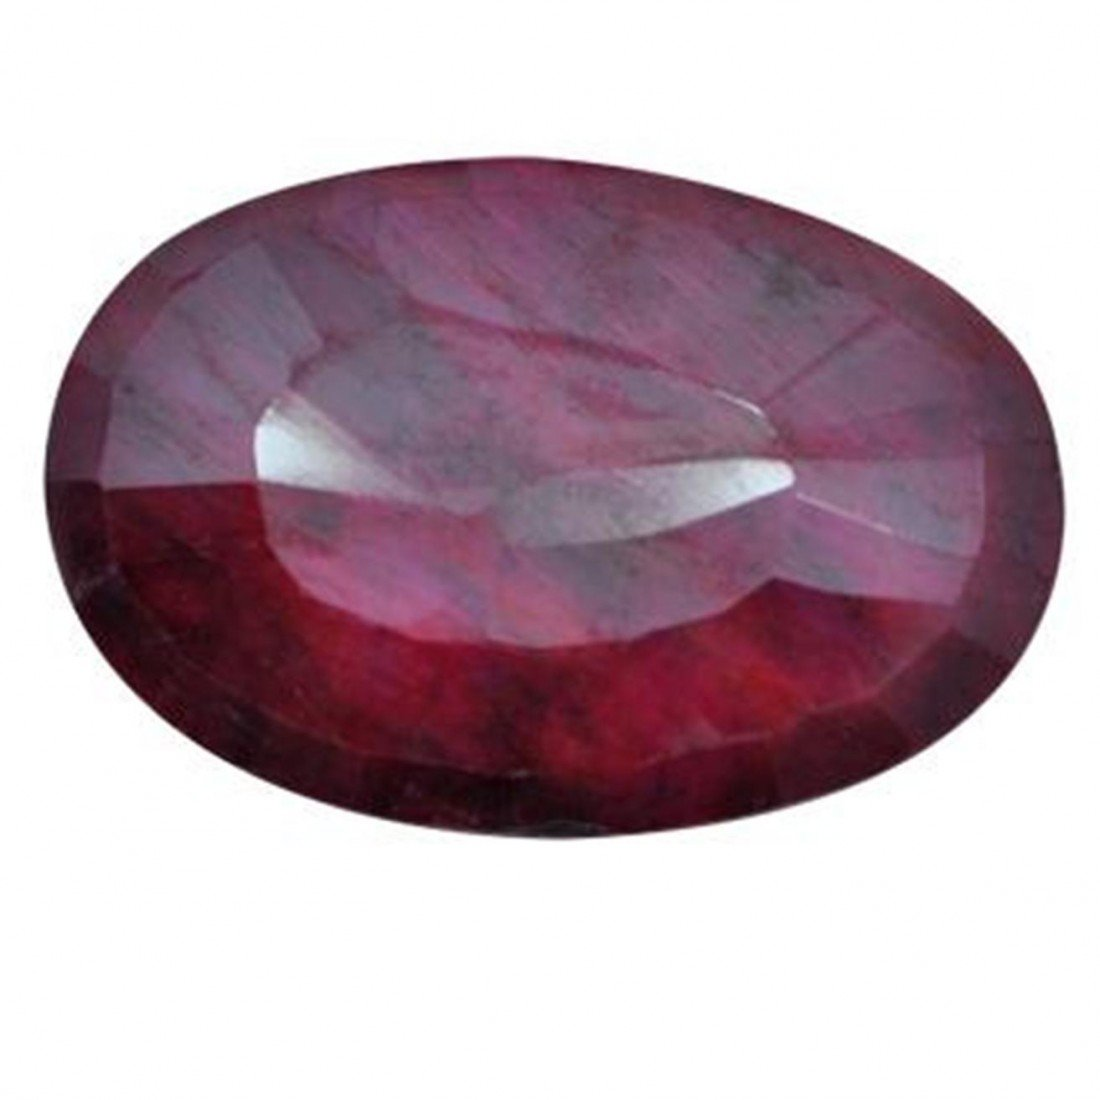 3Q: A 1 ct. Ruby Gem